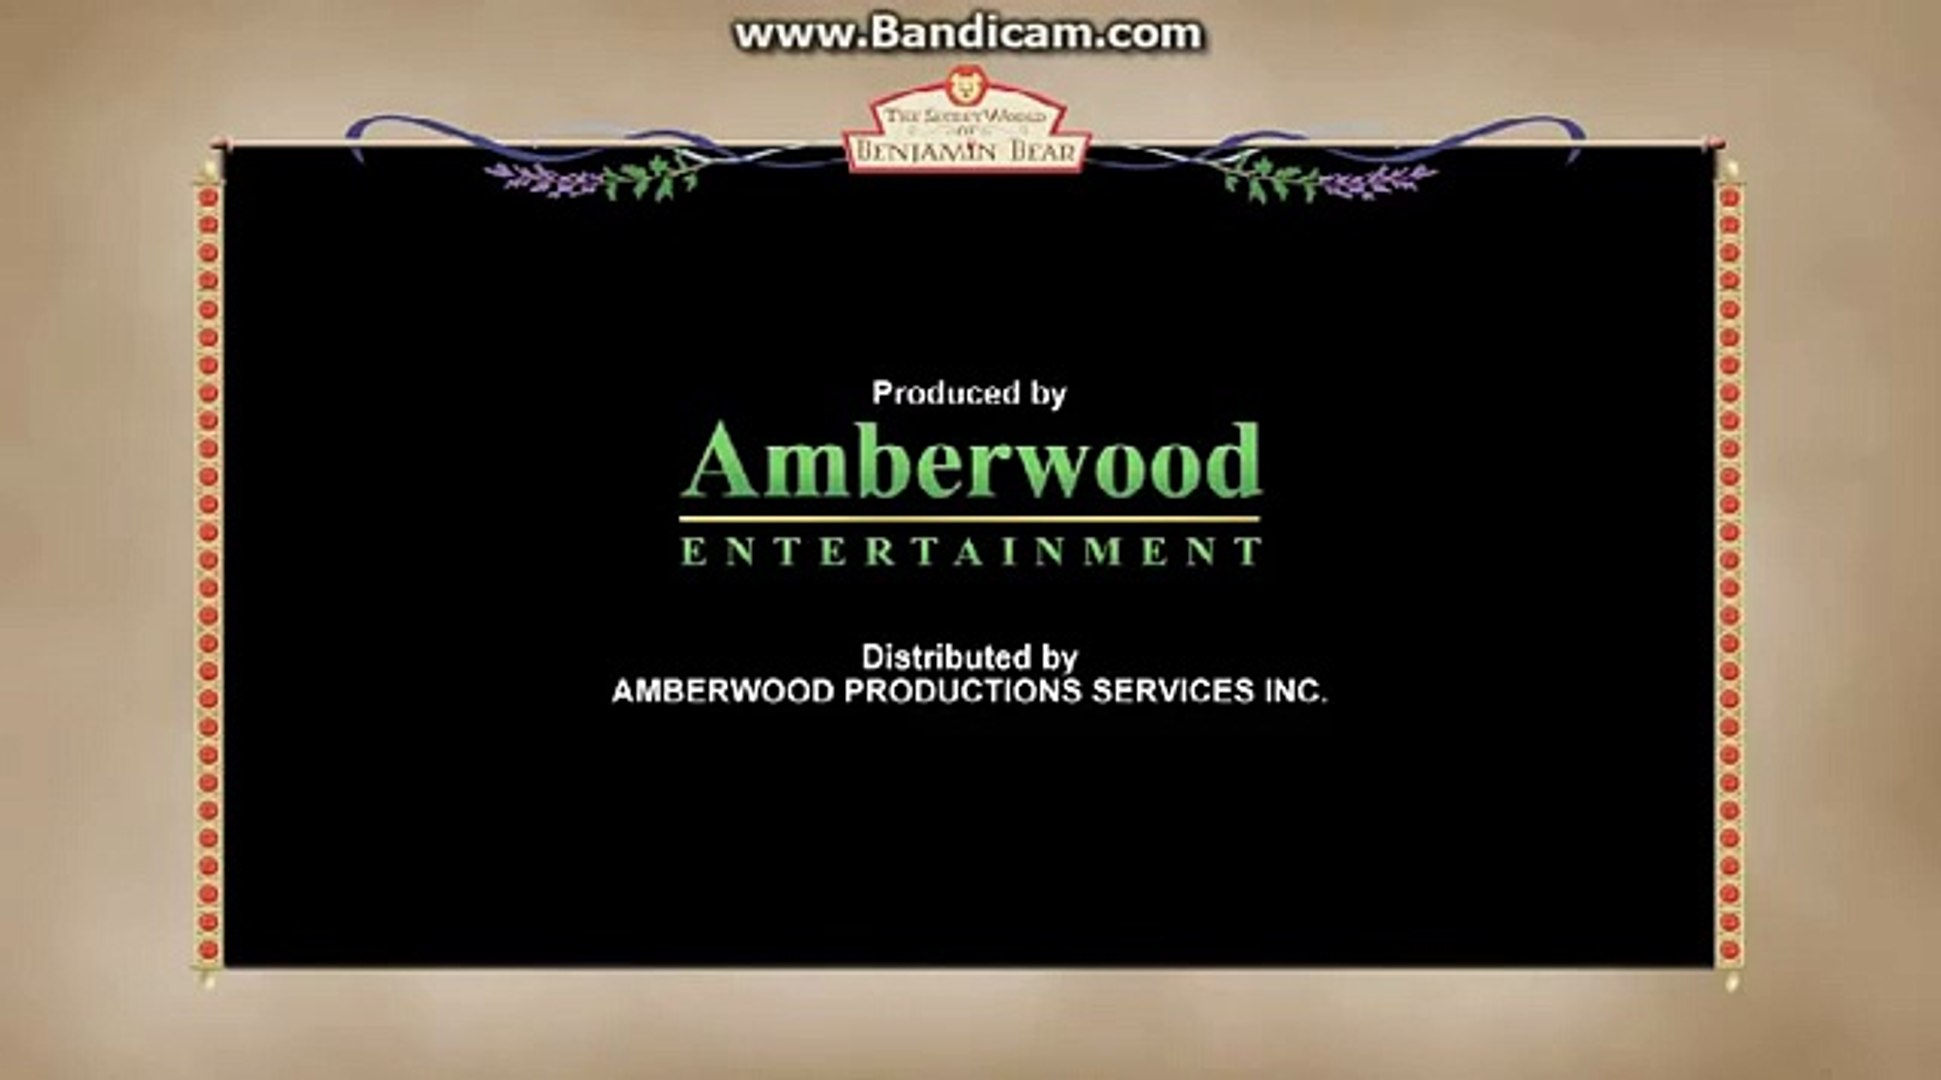 Fantastic Family Playhouse Disney Amberwood Entertainment 2010 Download Free Architecture Designs Scobabritishbridgeorg